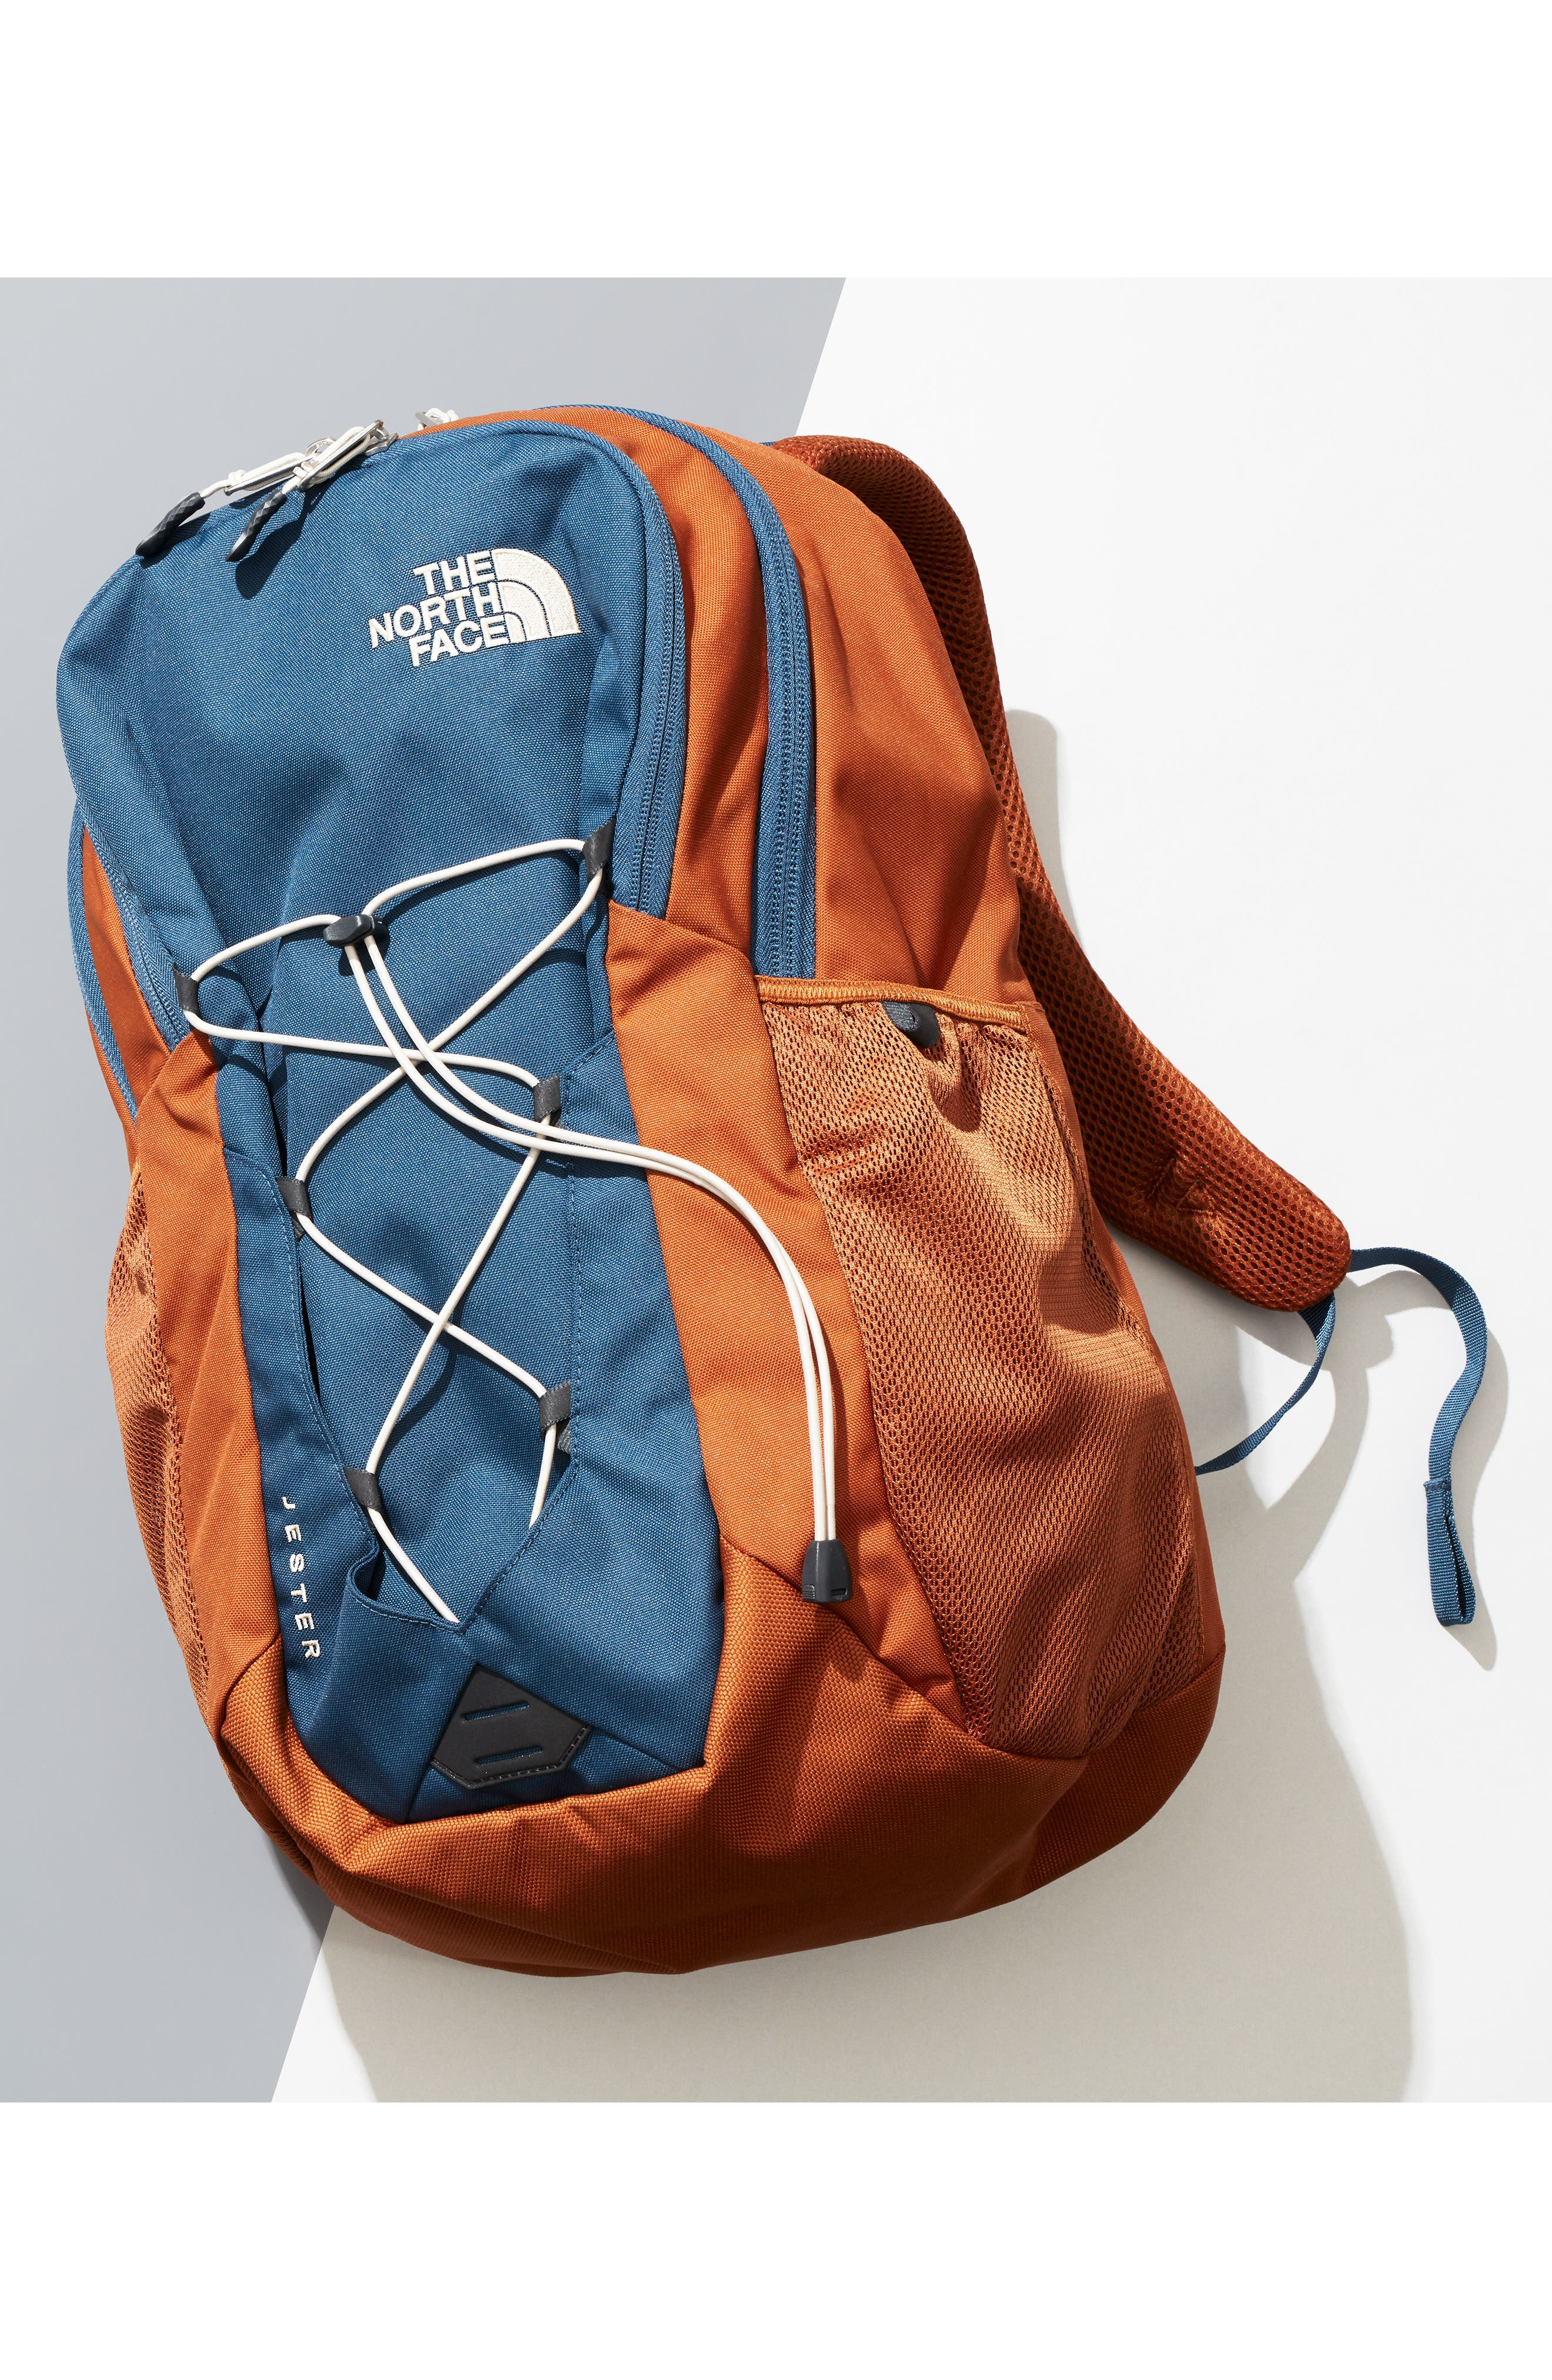 THE NORTH FACE,                             Jester Backpack,                             Main thumbnail 1, color,                             100